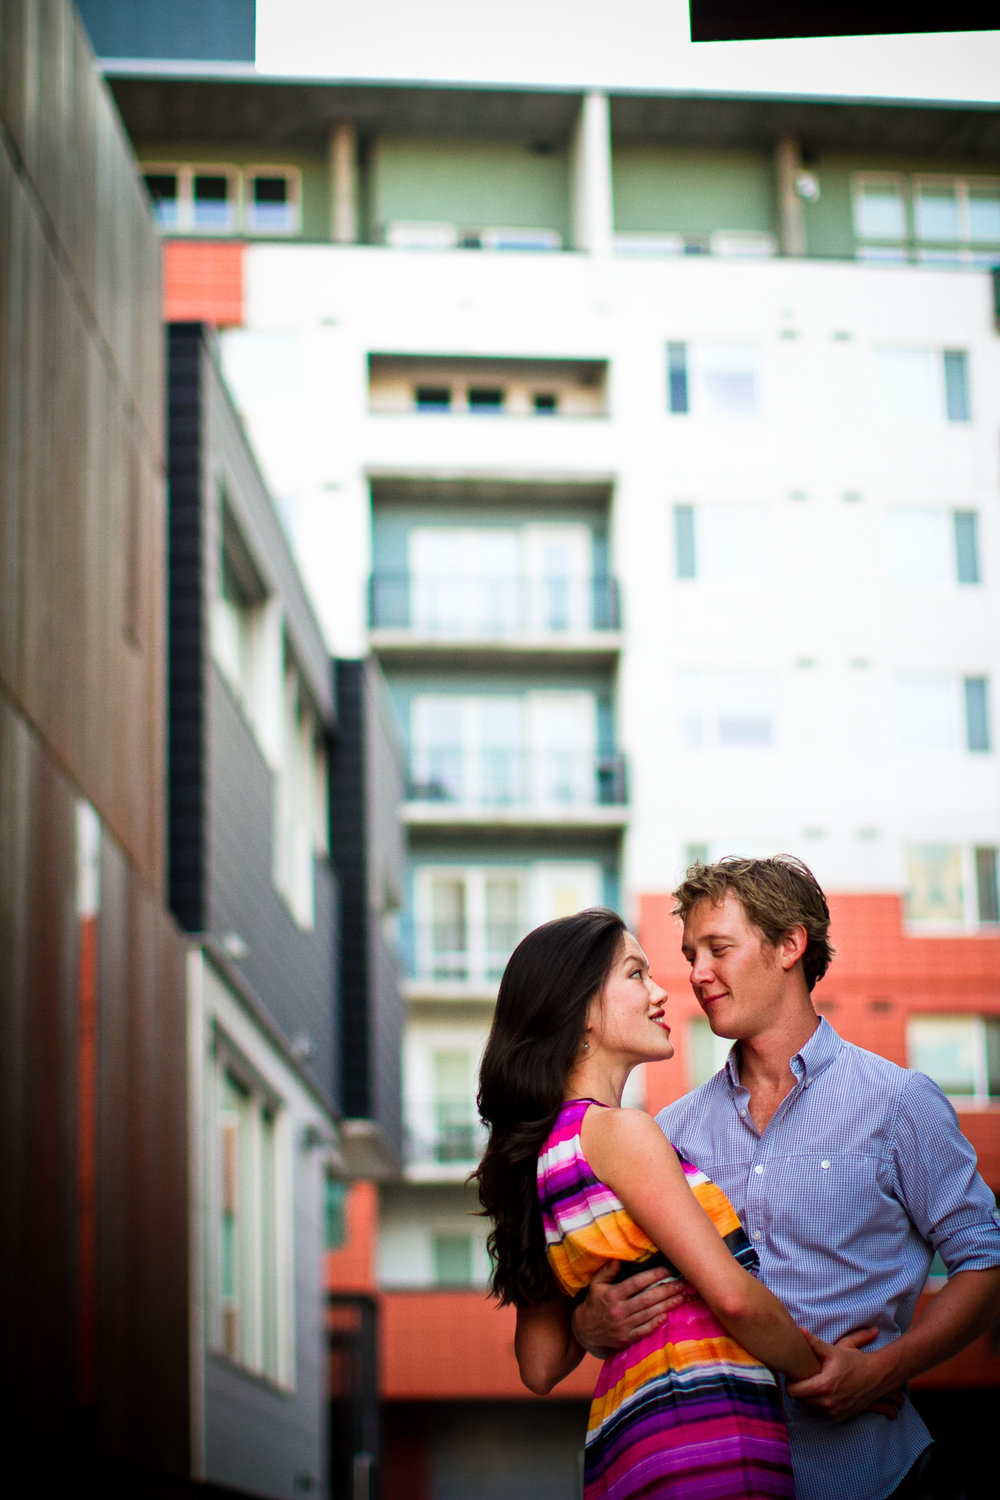 LoDo_Denver_Engagement_Photos_025.JPG